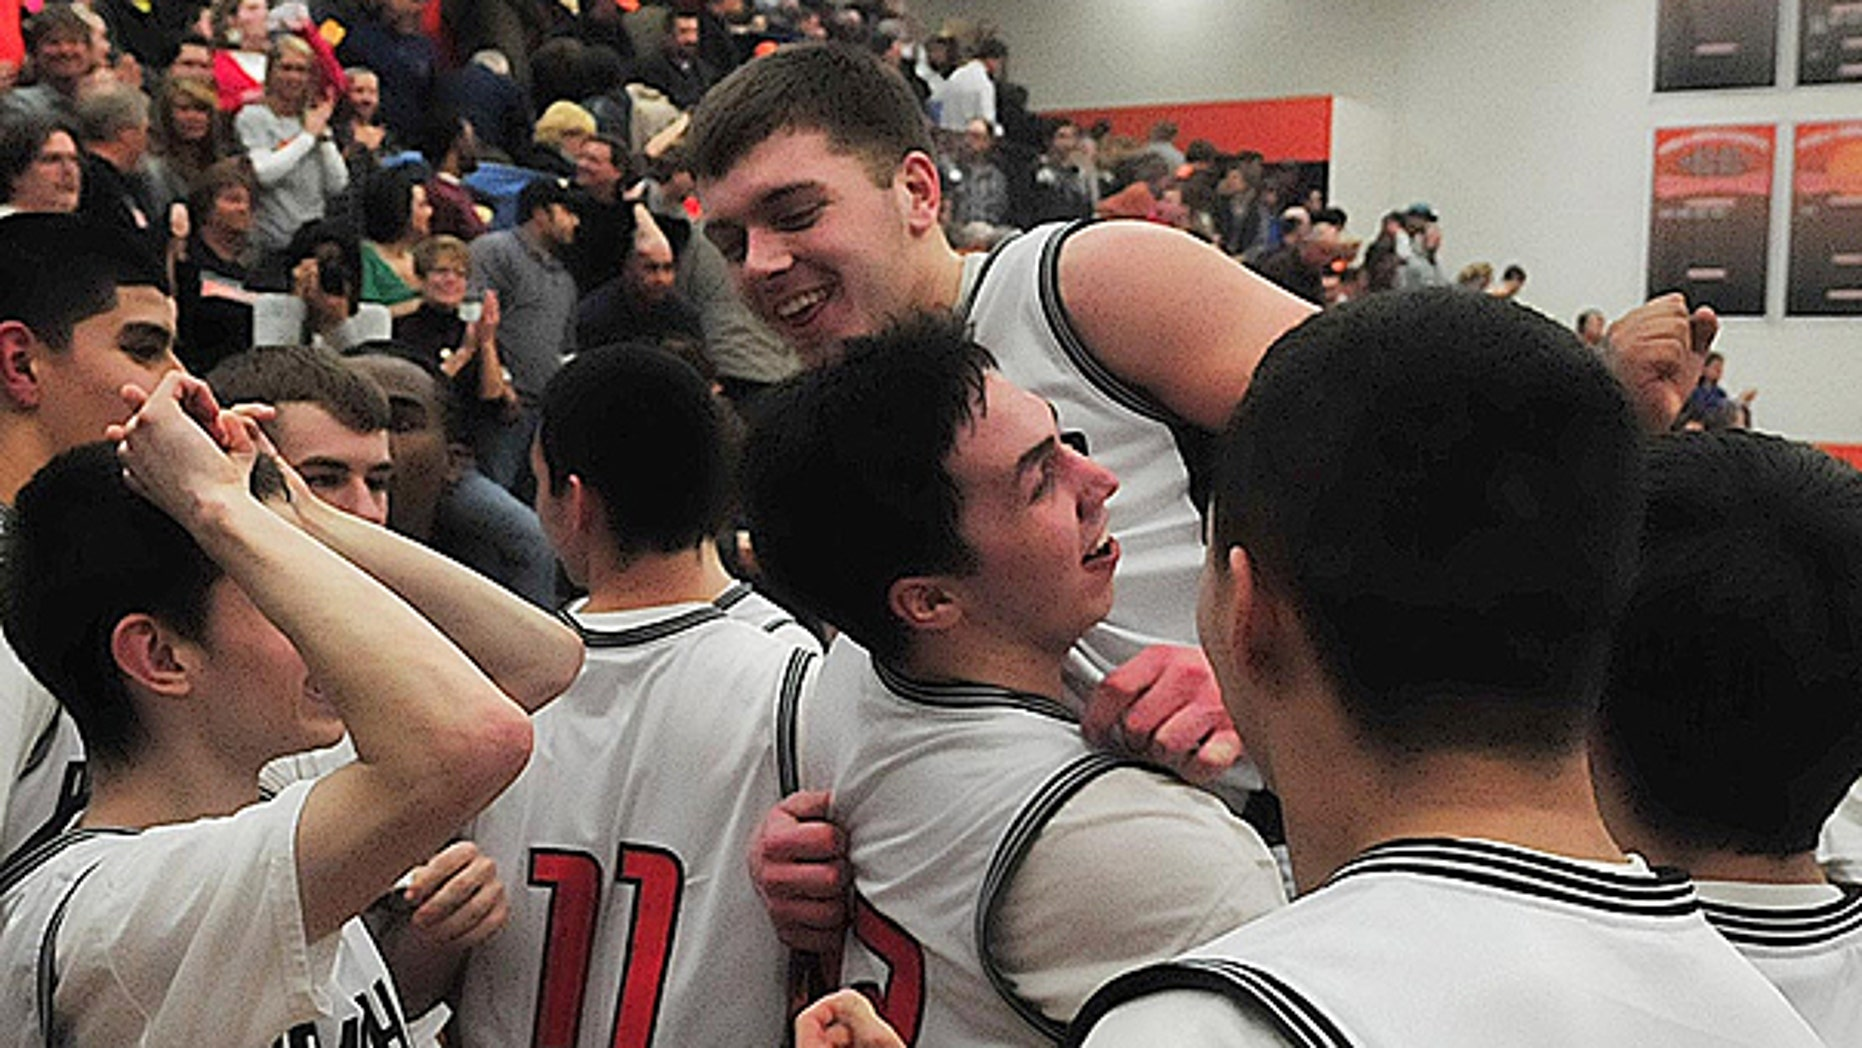 March 3: Teammates hoist Wes Leonard up after he hit the game-winning basket as the Fennville (Mich.) Blackhawks celebrate their victory against the Bridgman Bees, bringing their record to 20-0.